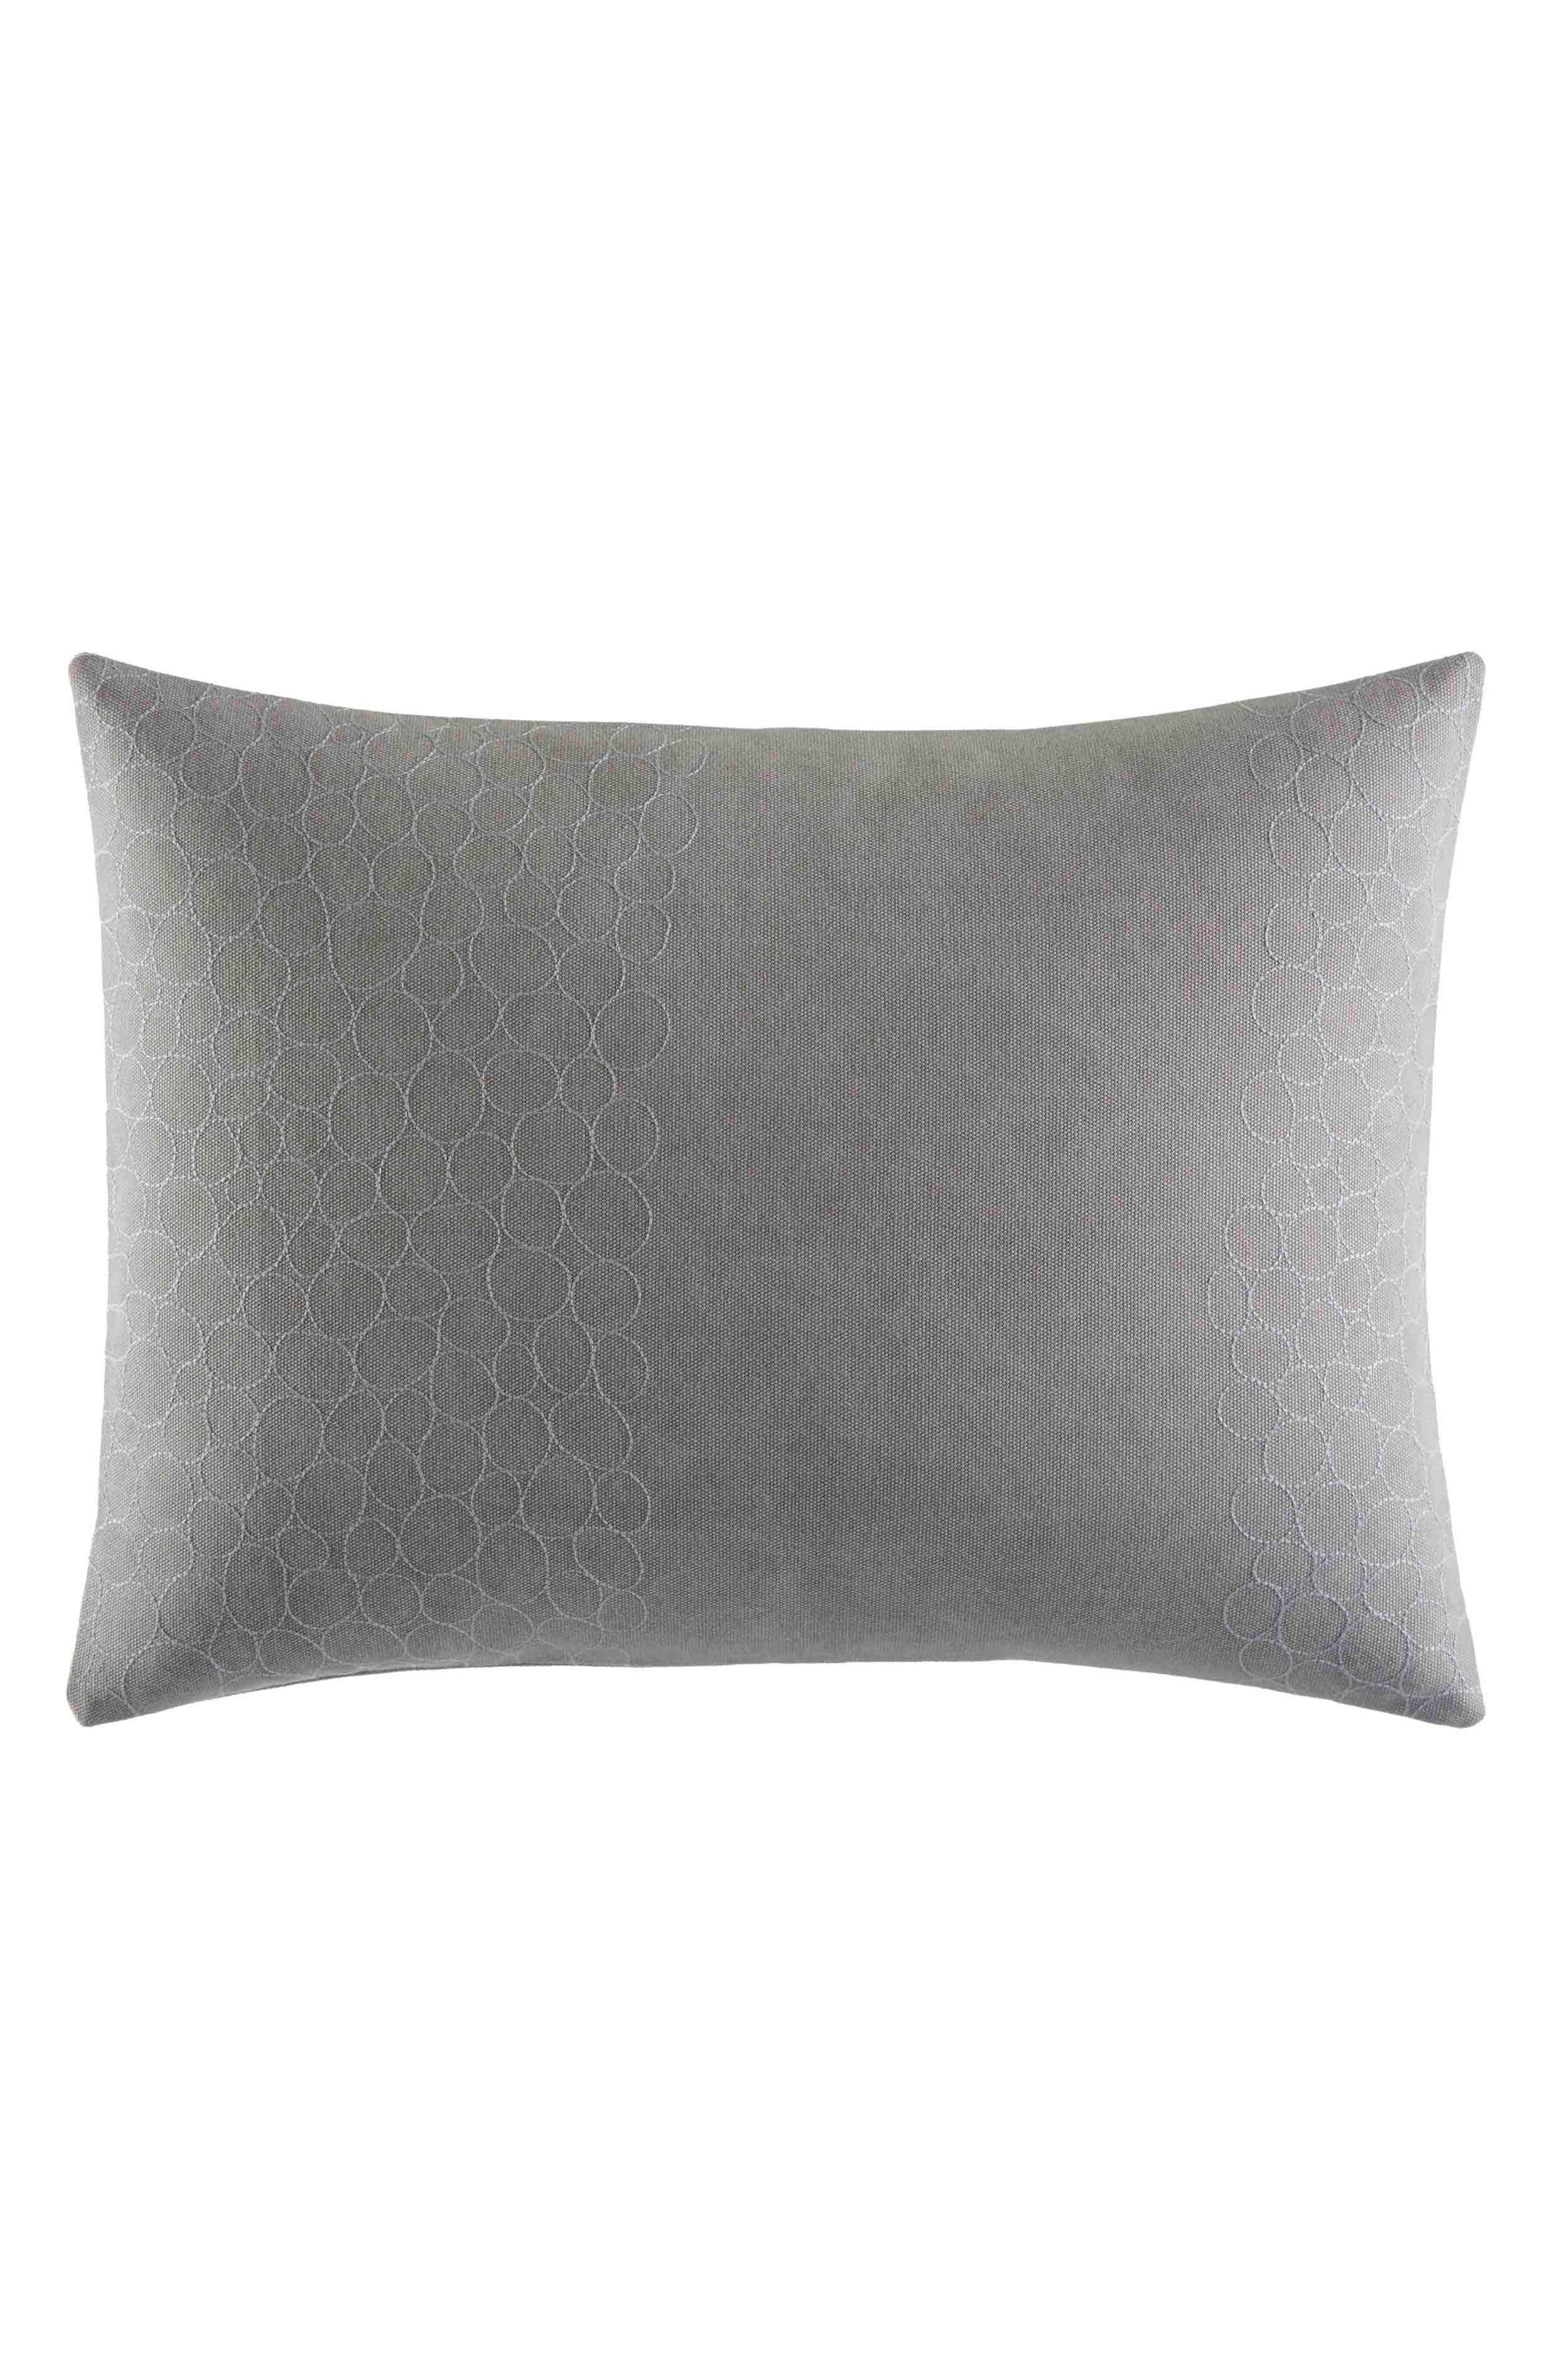 Transparent Leaves Breakfast Pillow,                         Main,                         color, Medium Gray